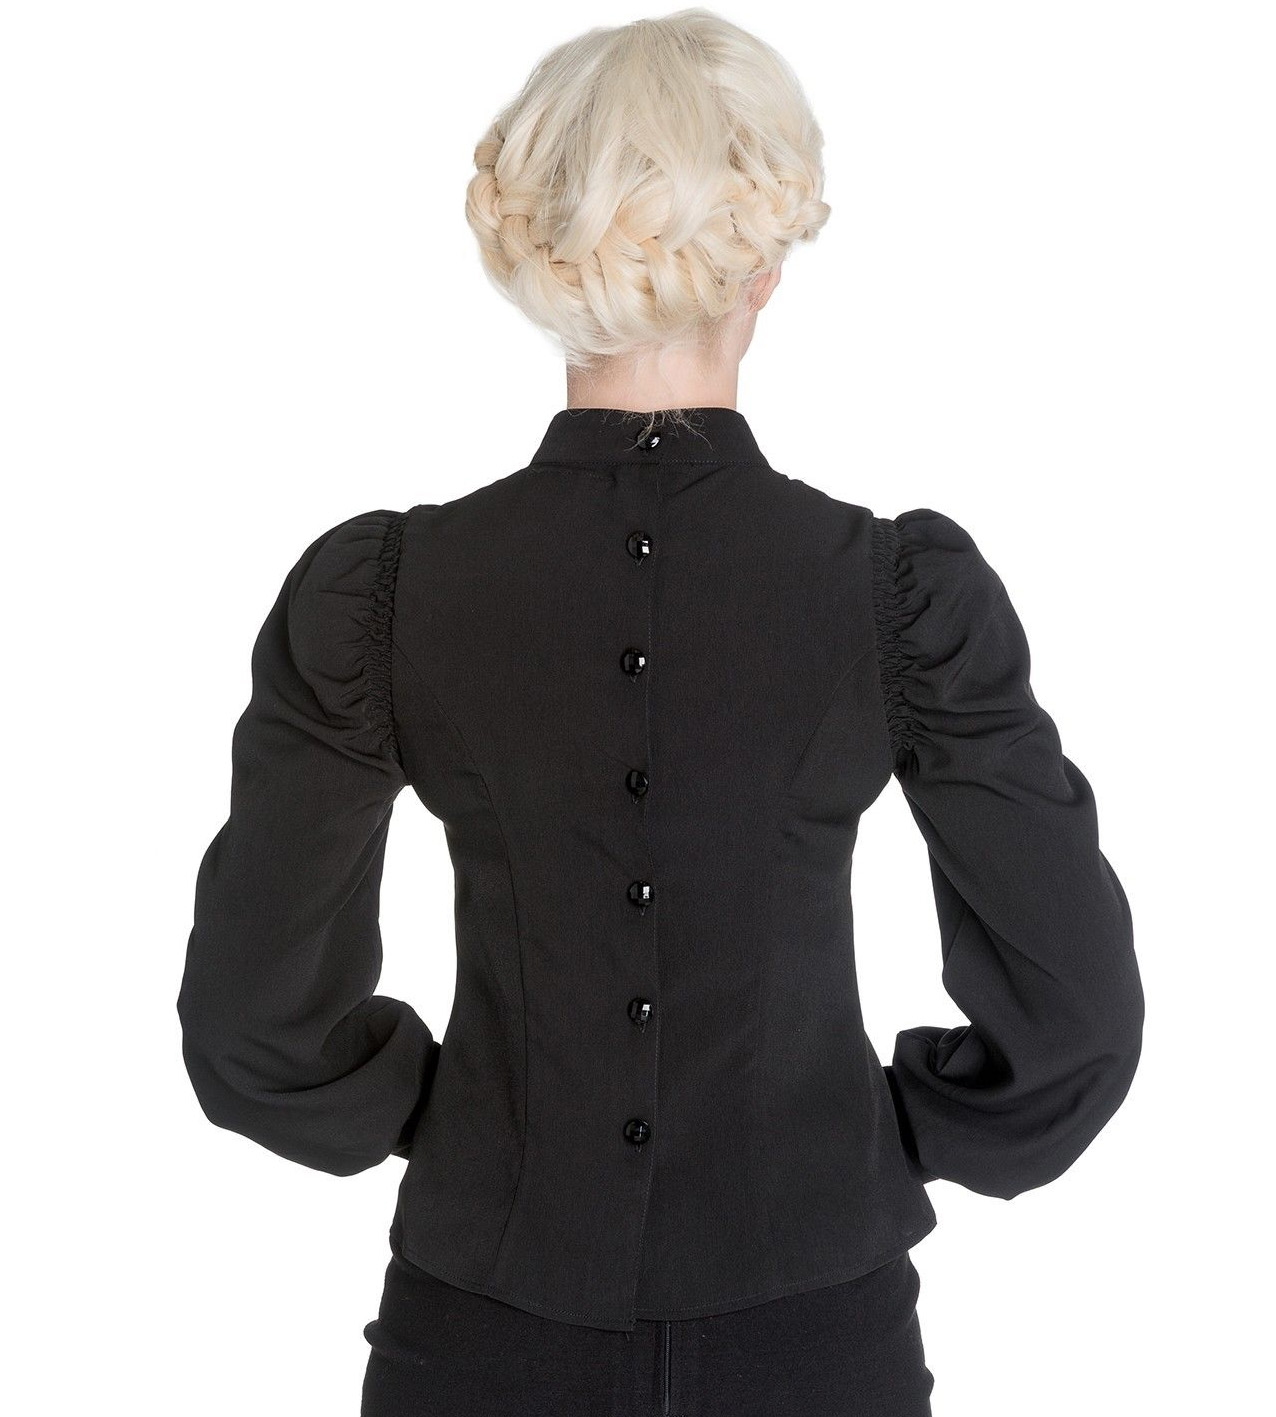 Hell-Bunny-Spin-Doctor-Vampire-Gothic-Shirt-Top-MELROSE-Blouse-All-Sizes thumbnail 5